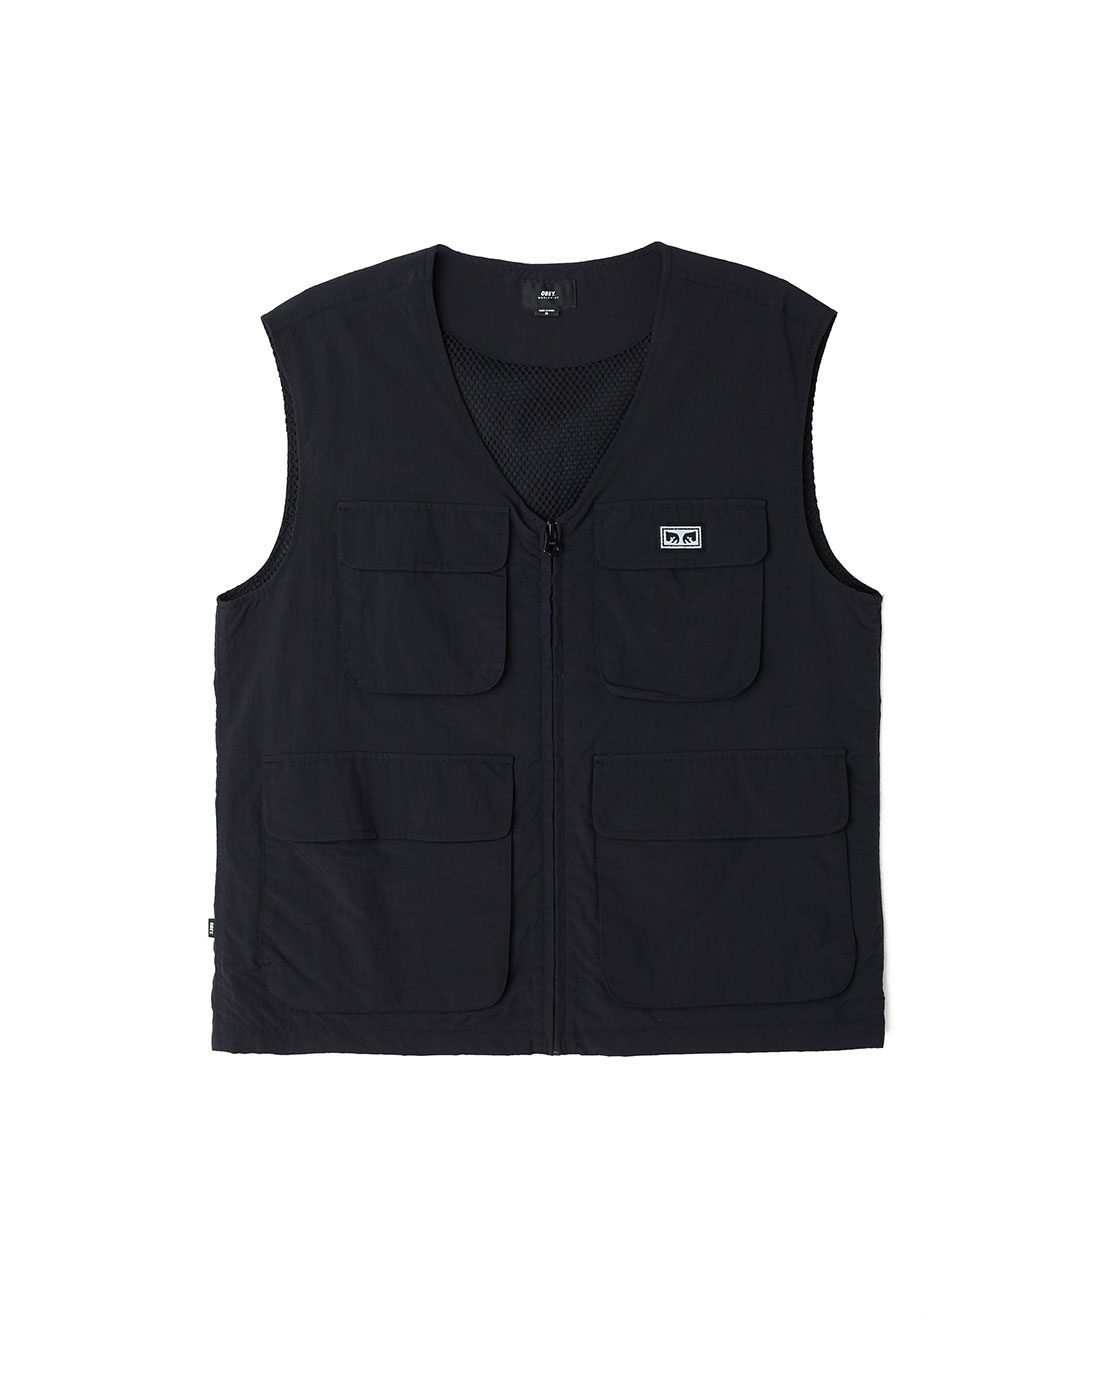 Obey Ceremony Technical Vest